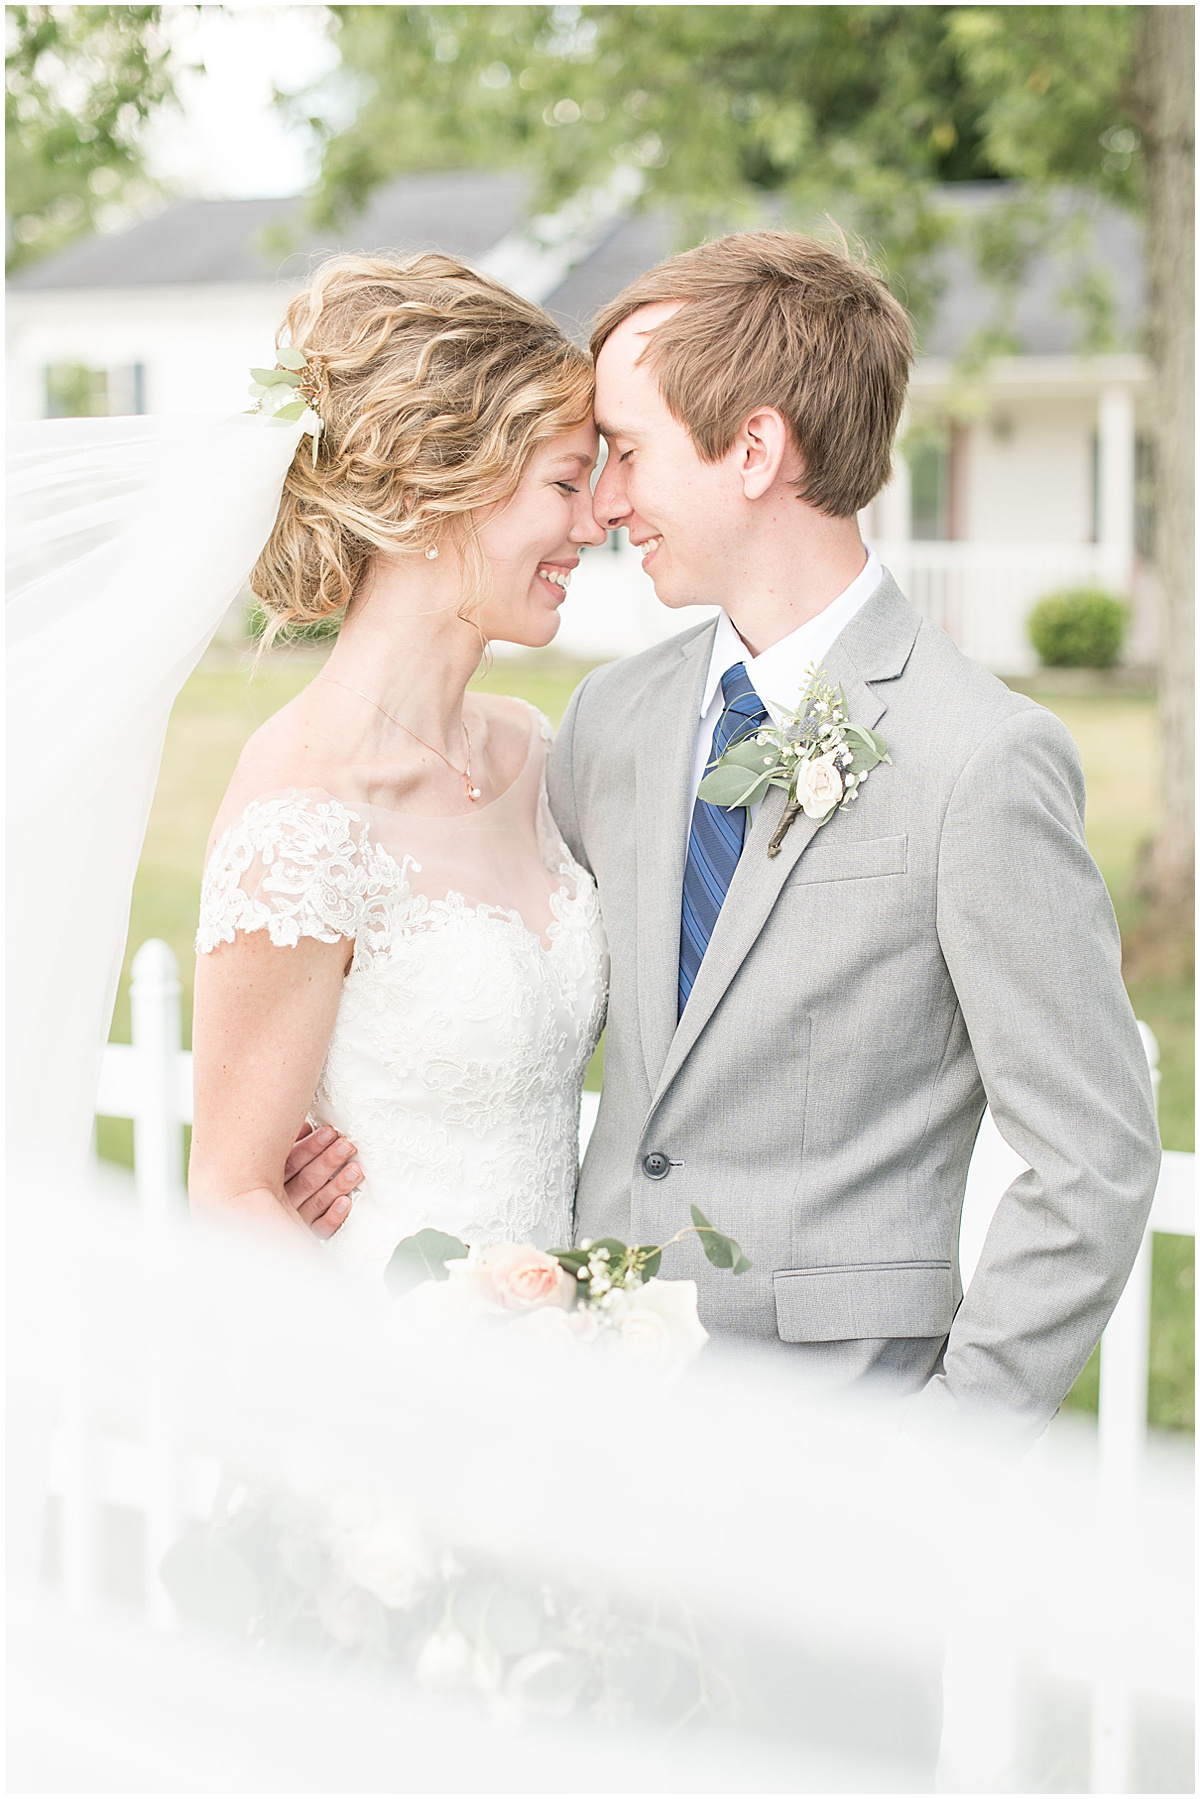 Bride and groom after wedding at The Matterhorn in Elkhart, Indiana by Victoria Rayburn Photography